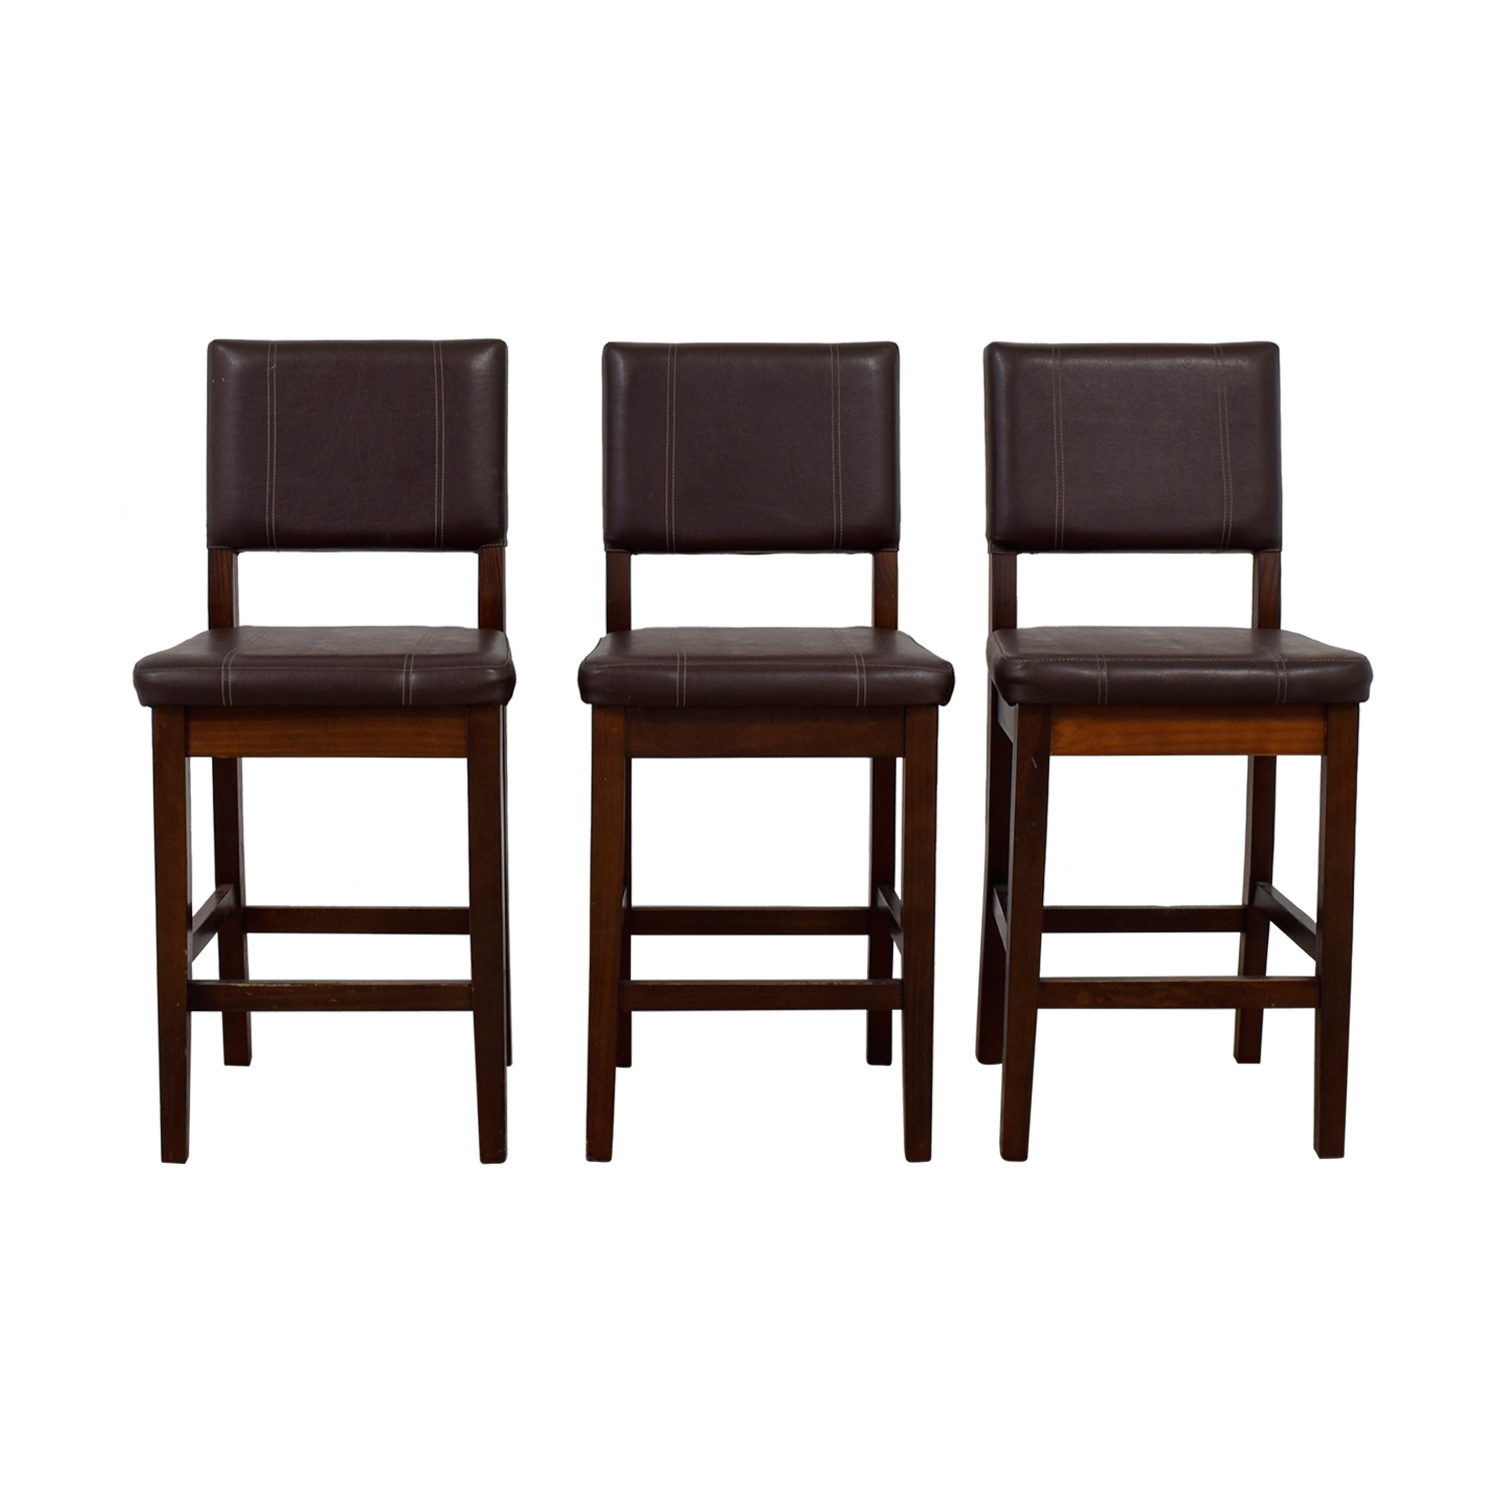 Brilliant 71 Off Pier 1 Pier 1 Imports Brown Leather Stools Chairs Cjindustries Chair Design For Home Cjindustriesco